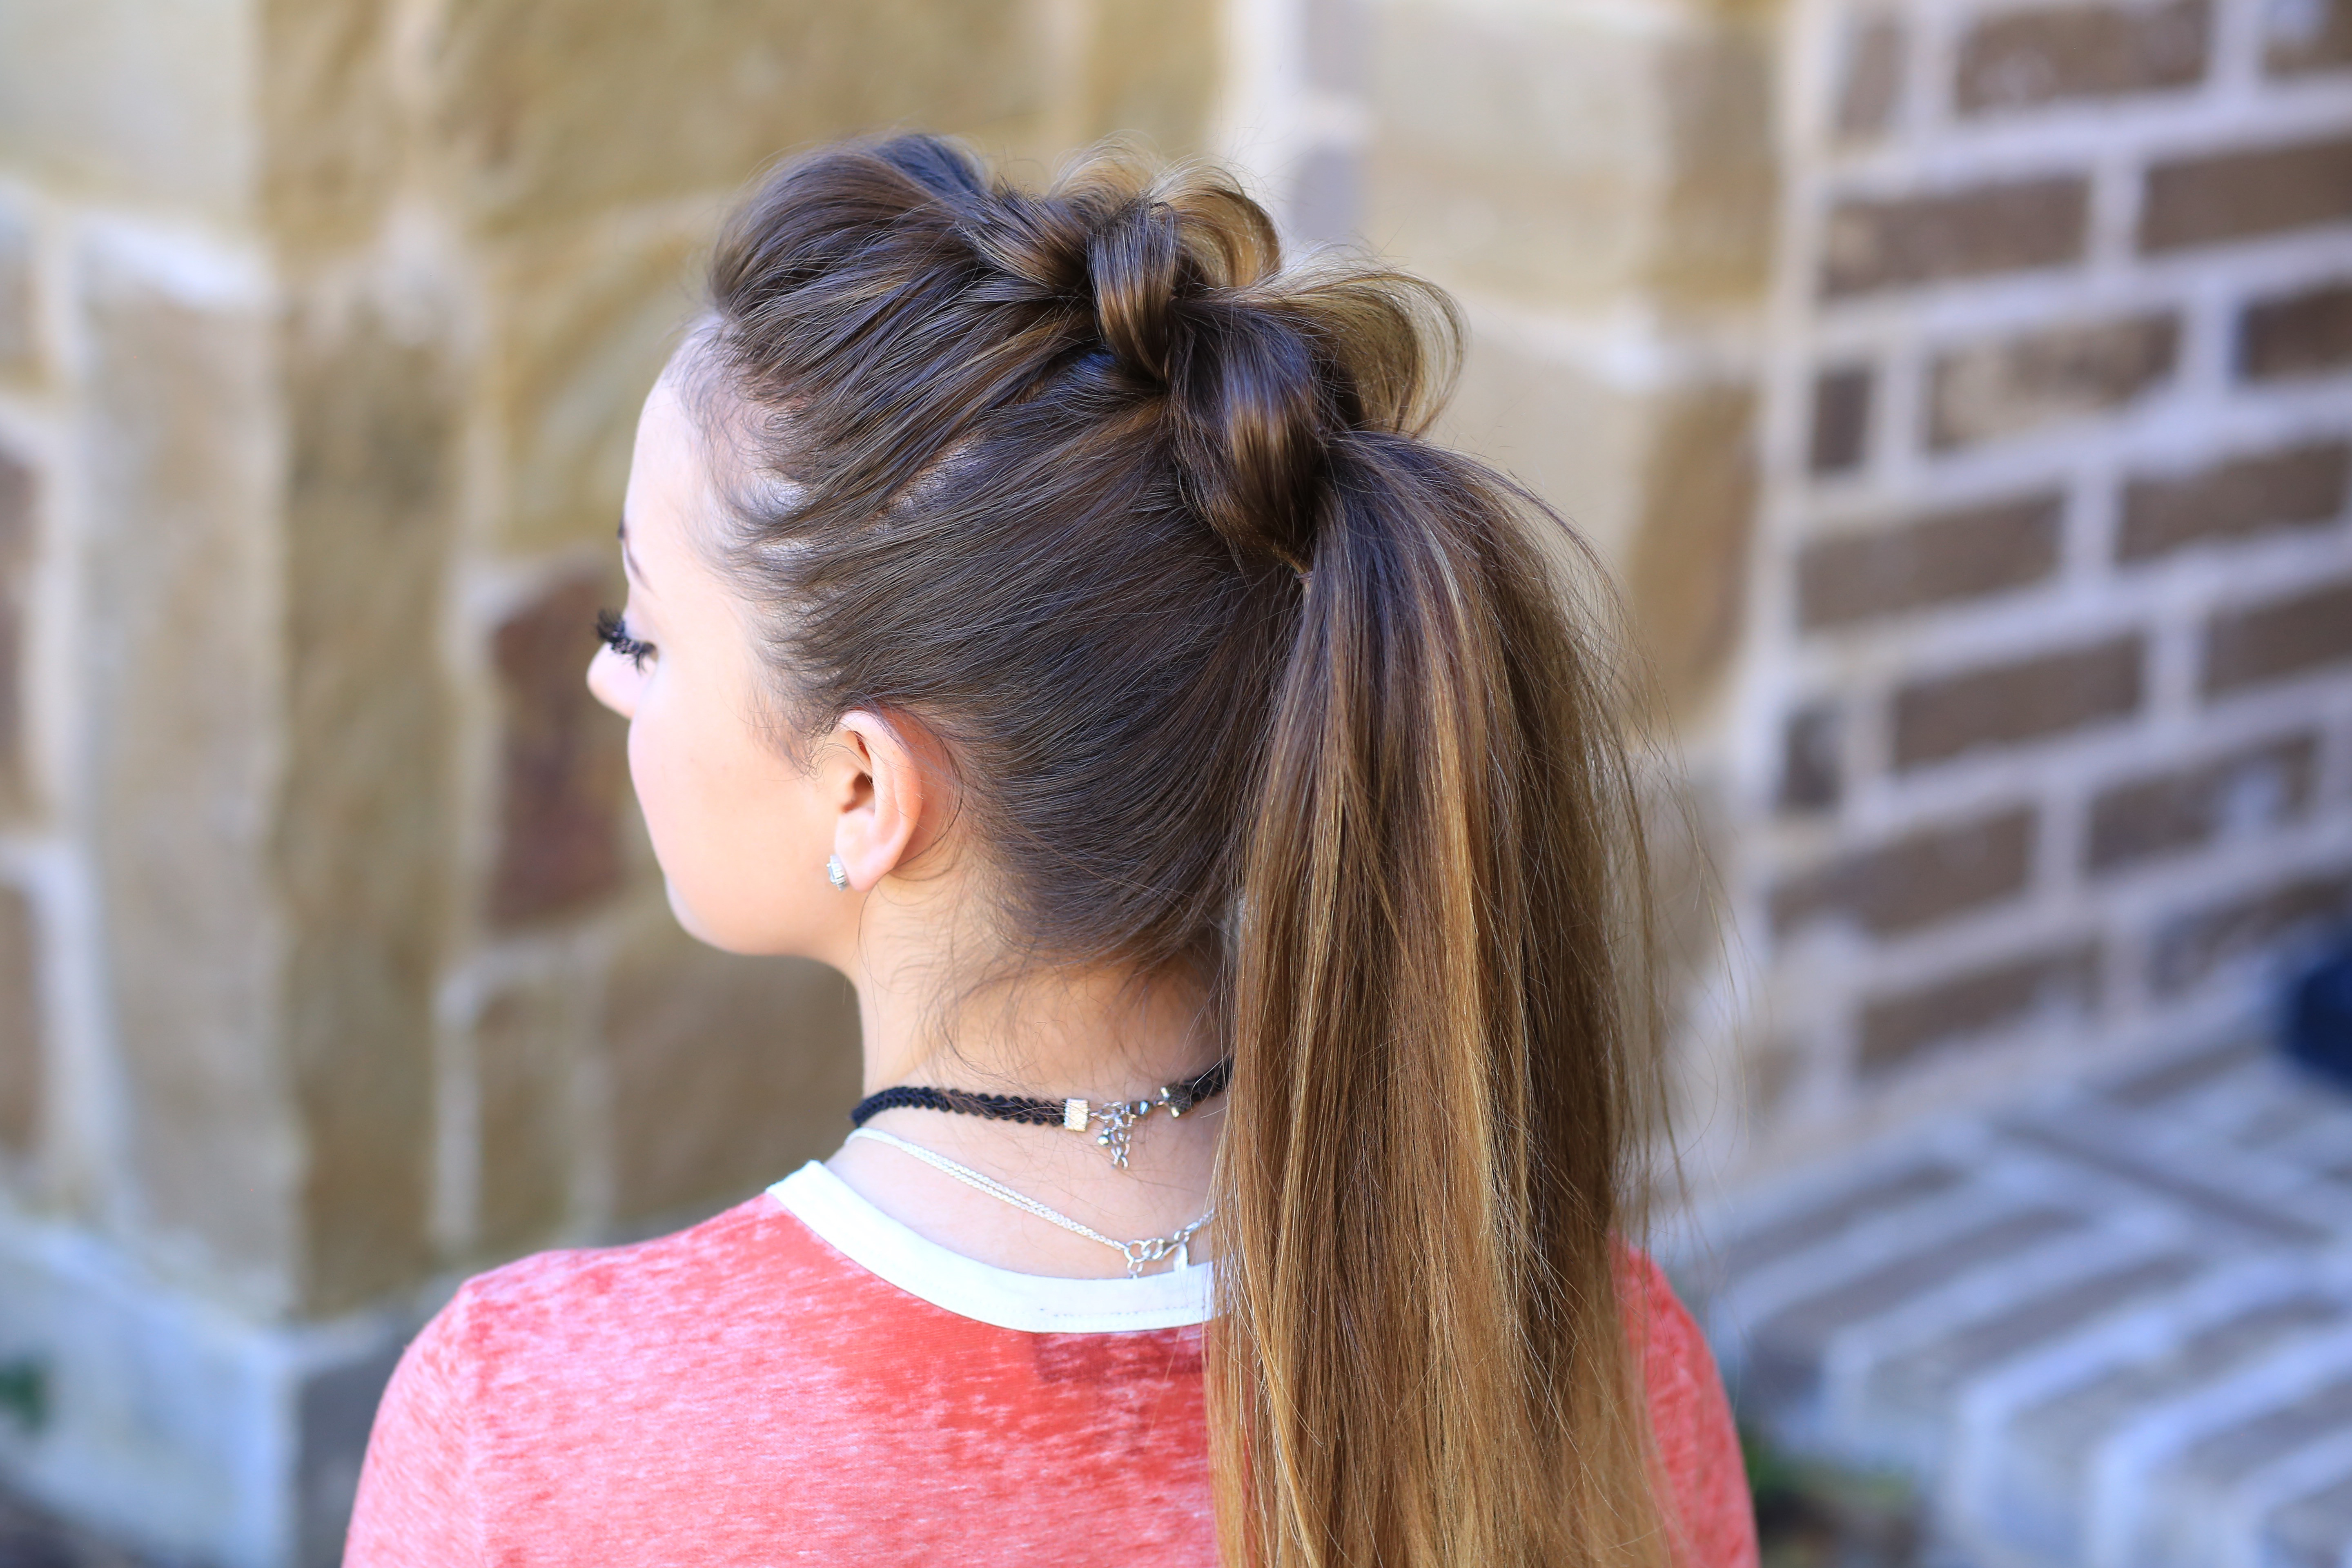 Best ideas about Cute Girls Haircuts . Save or Pin Pull Thru Ponytail Now.